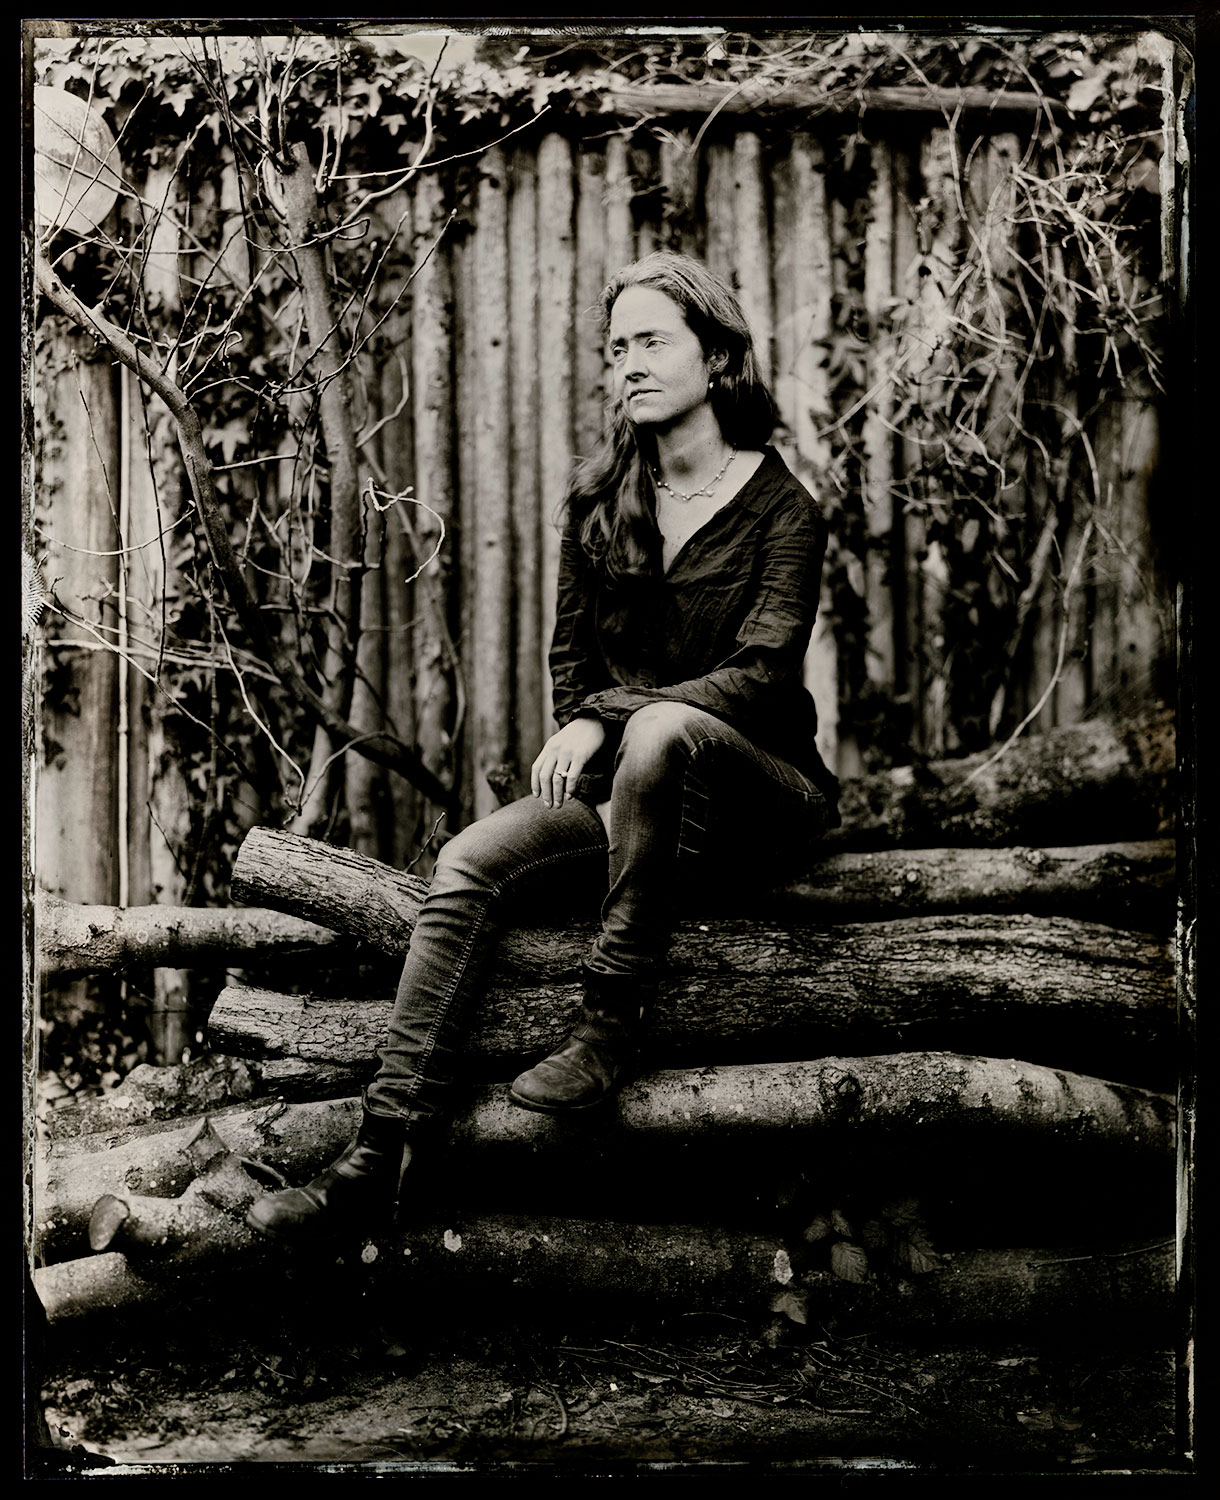 wetplate-scan189.jpg